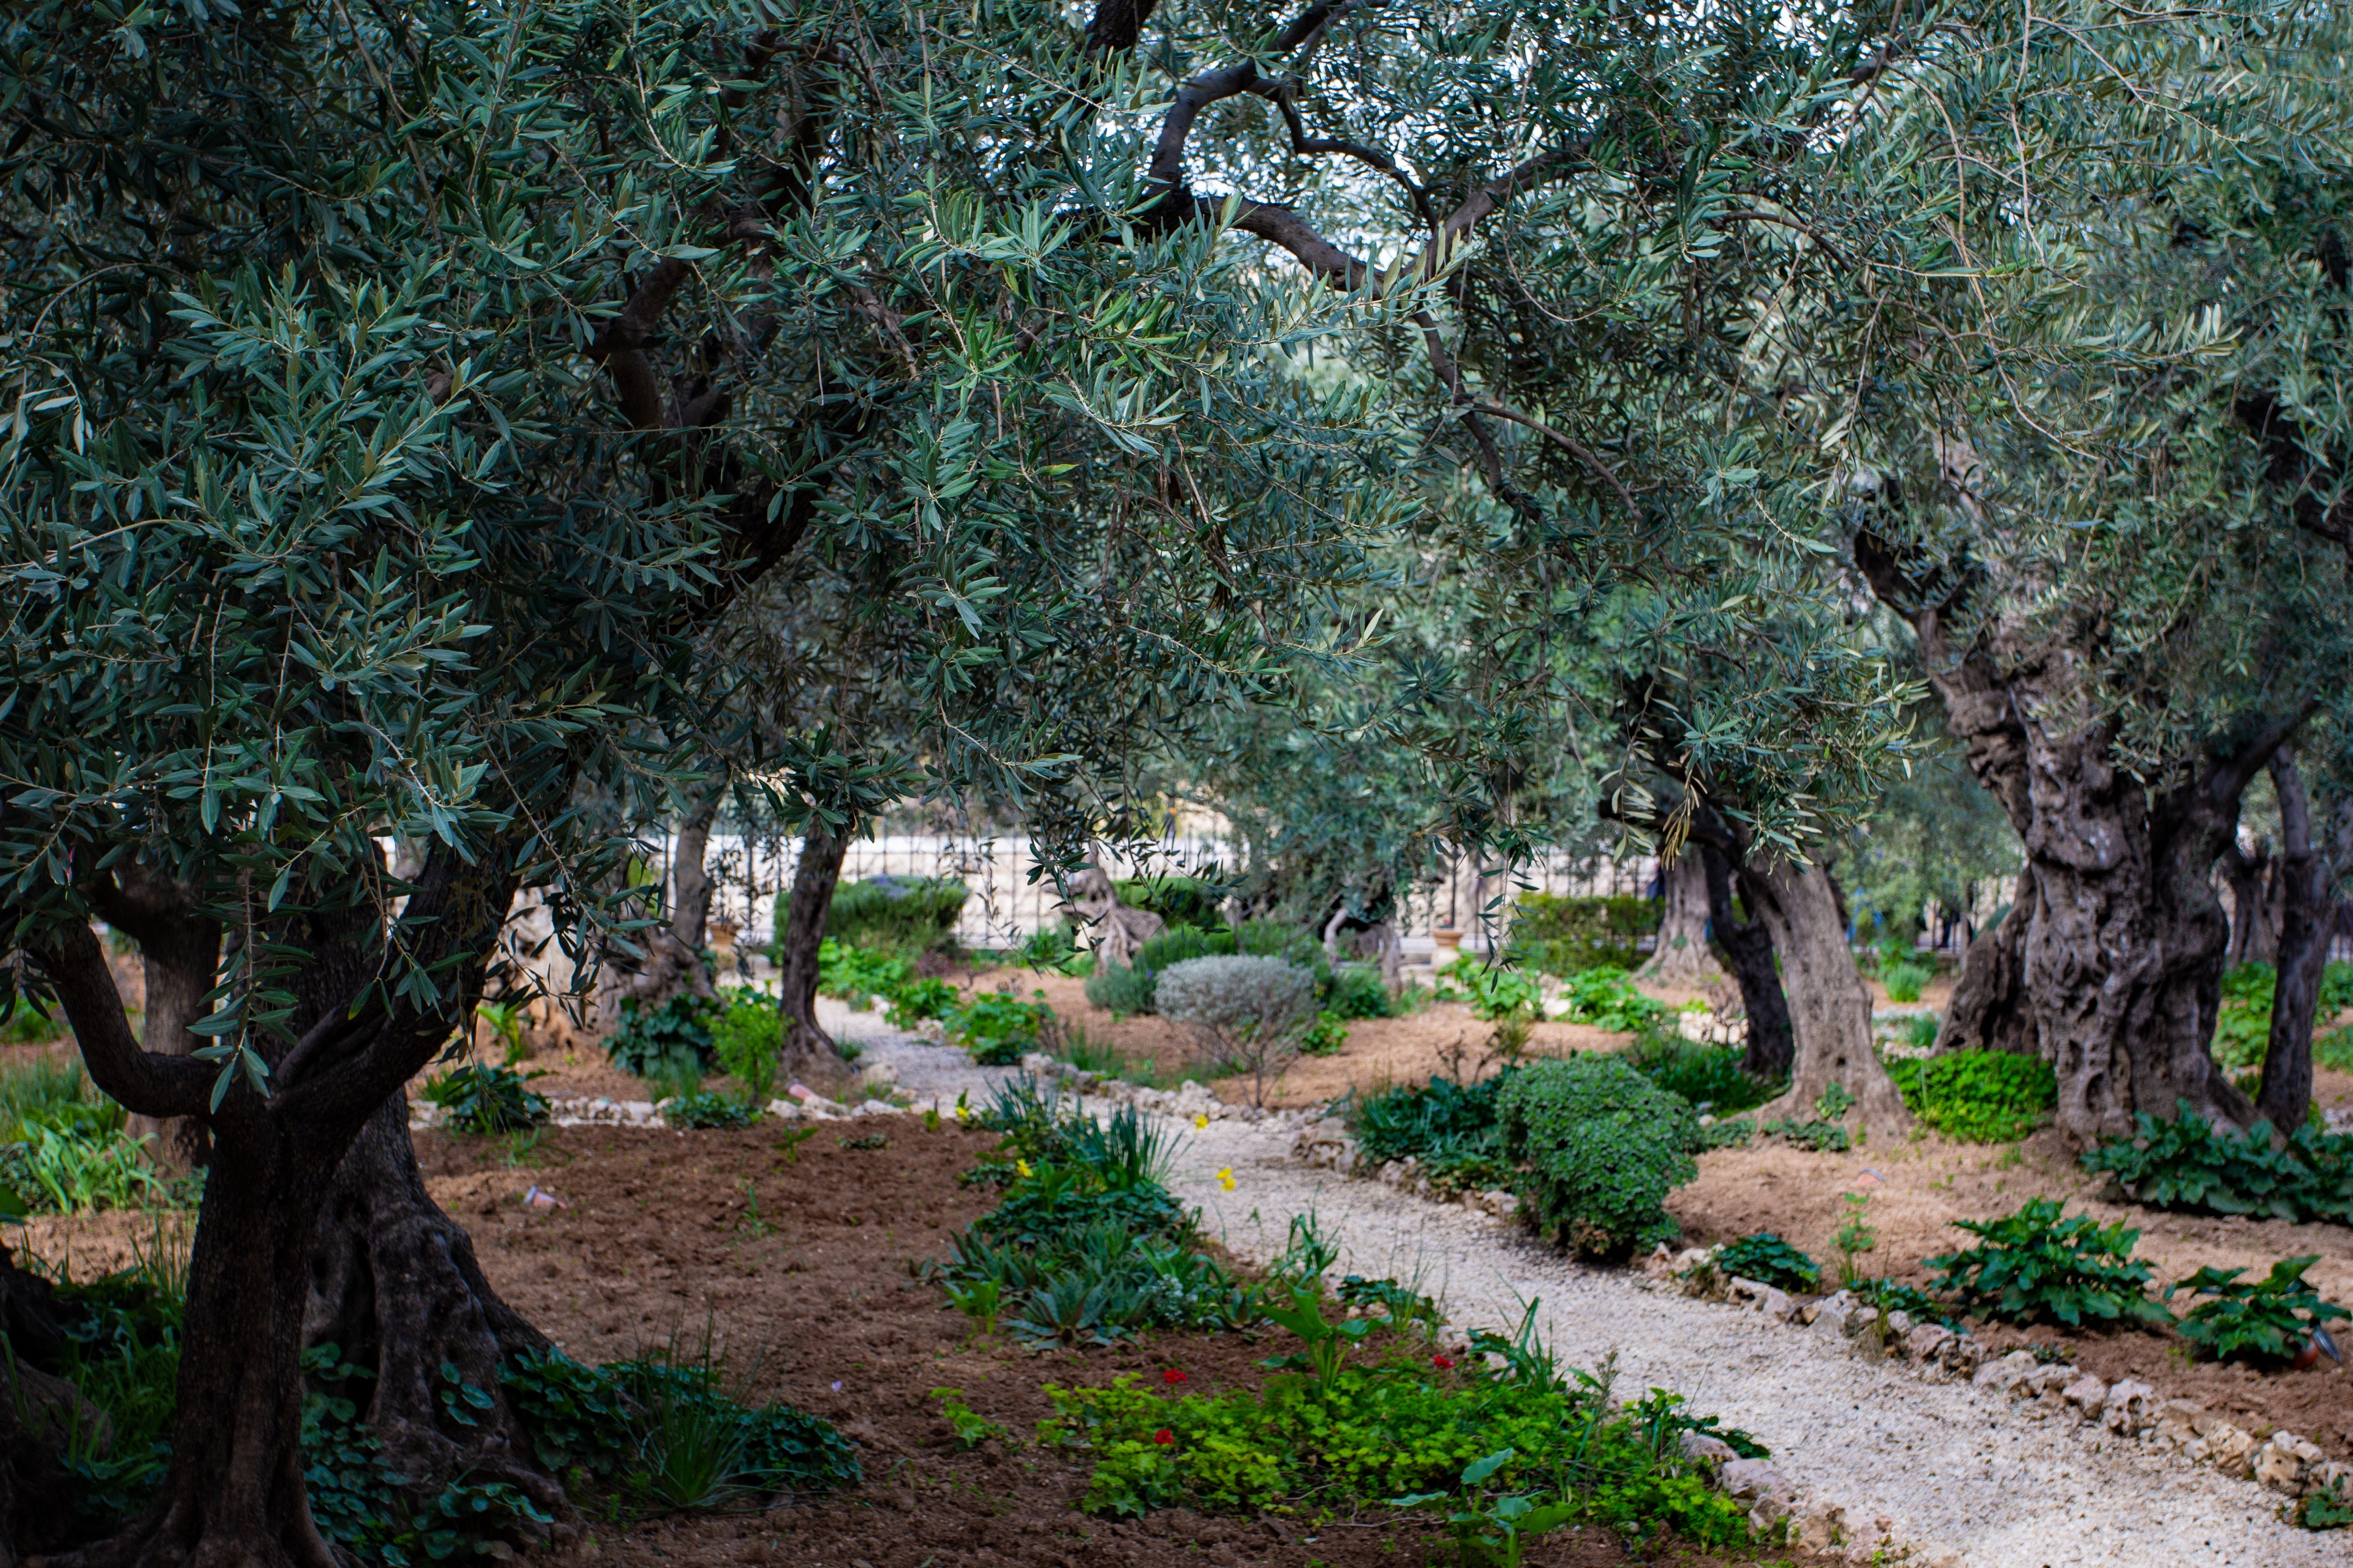 A garden in Israel filled with olive trees.